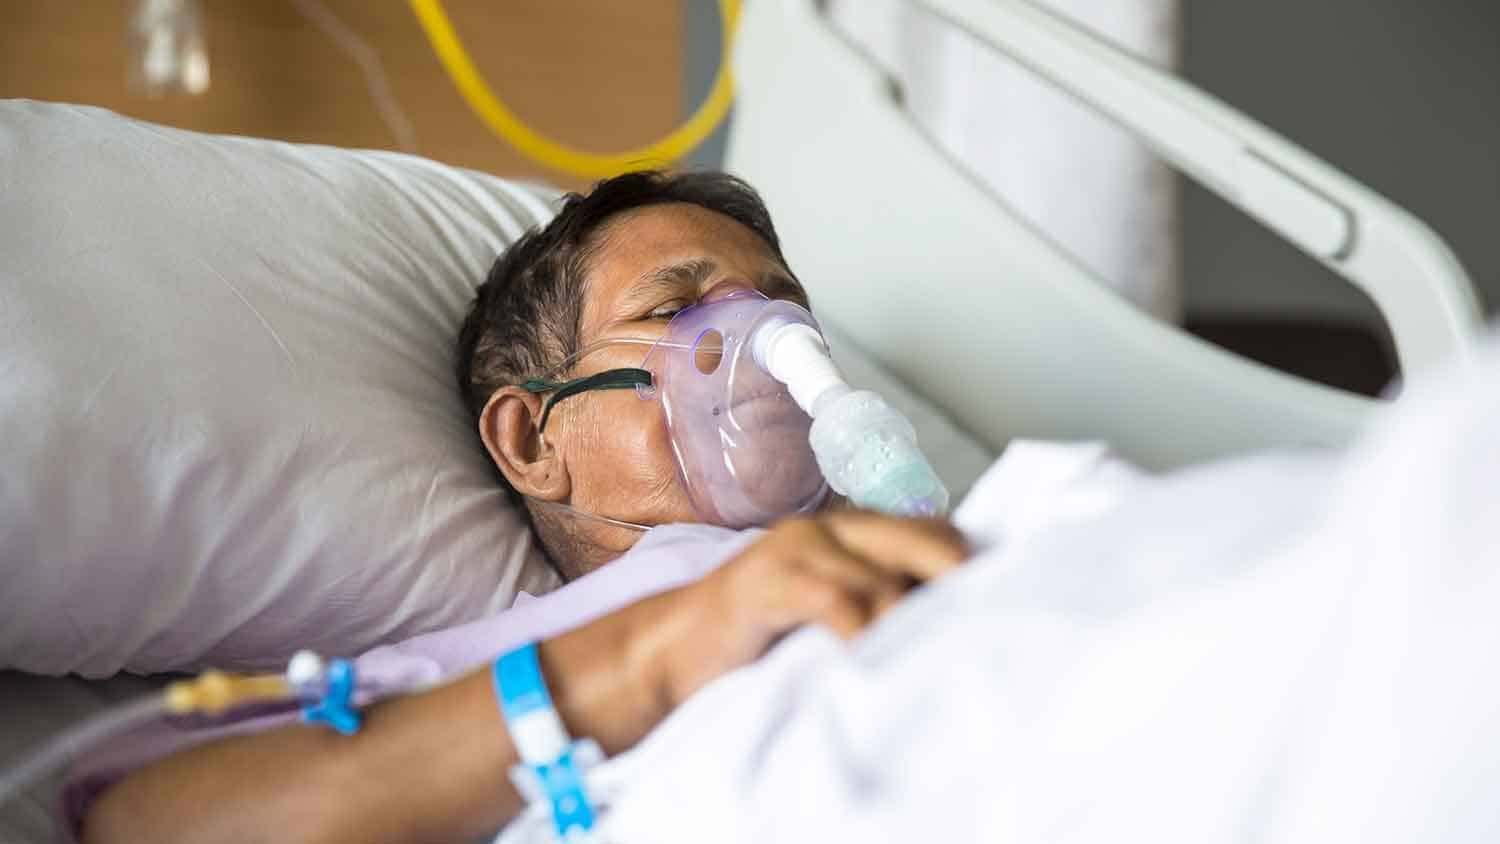 Man in hospital bed with an oxygen mask strapped over his face.